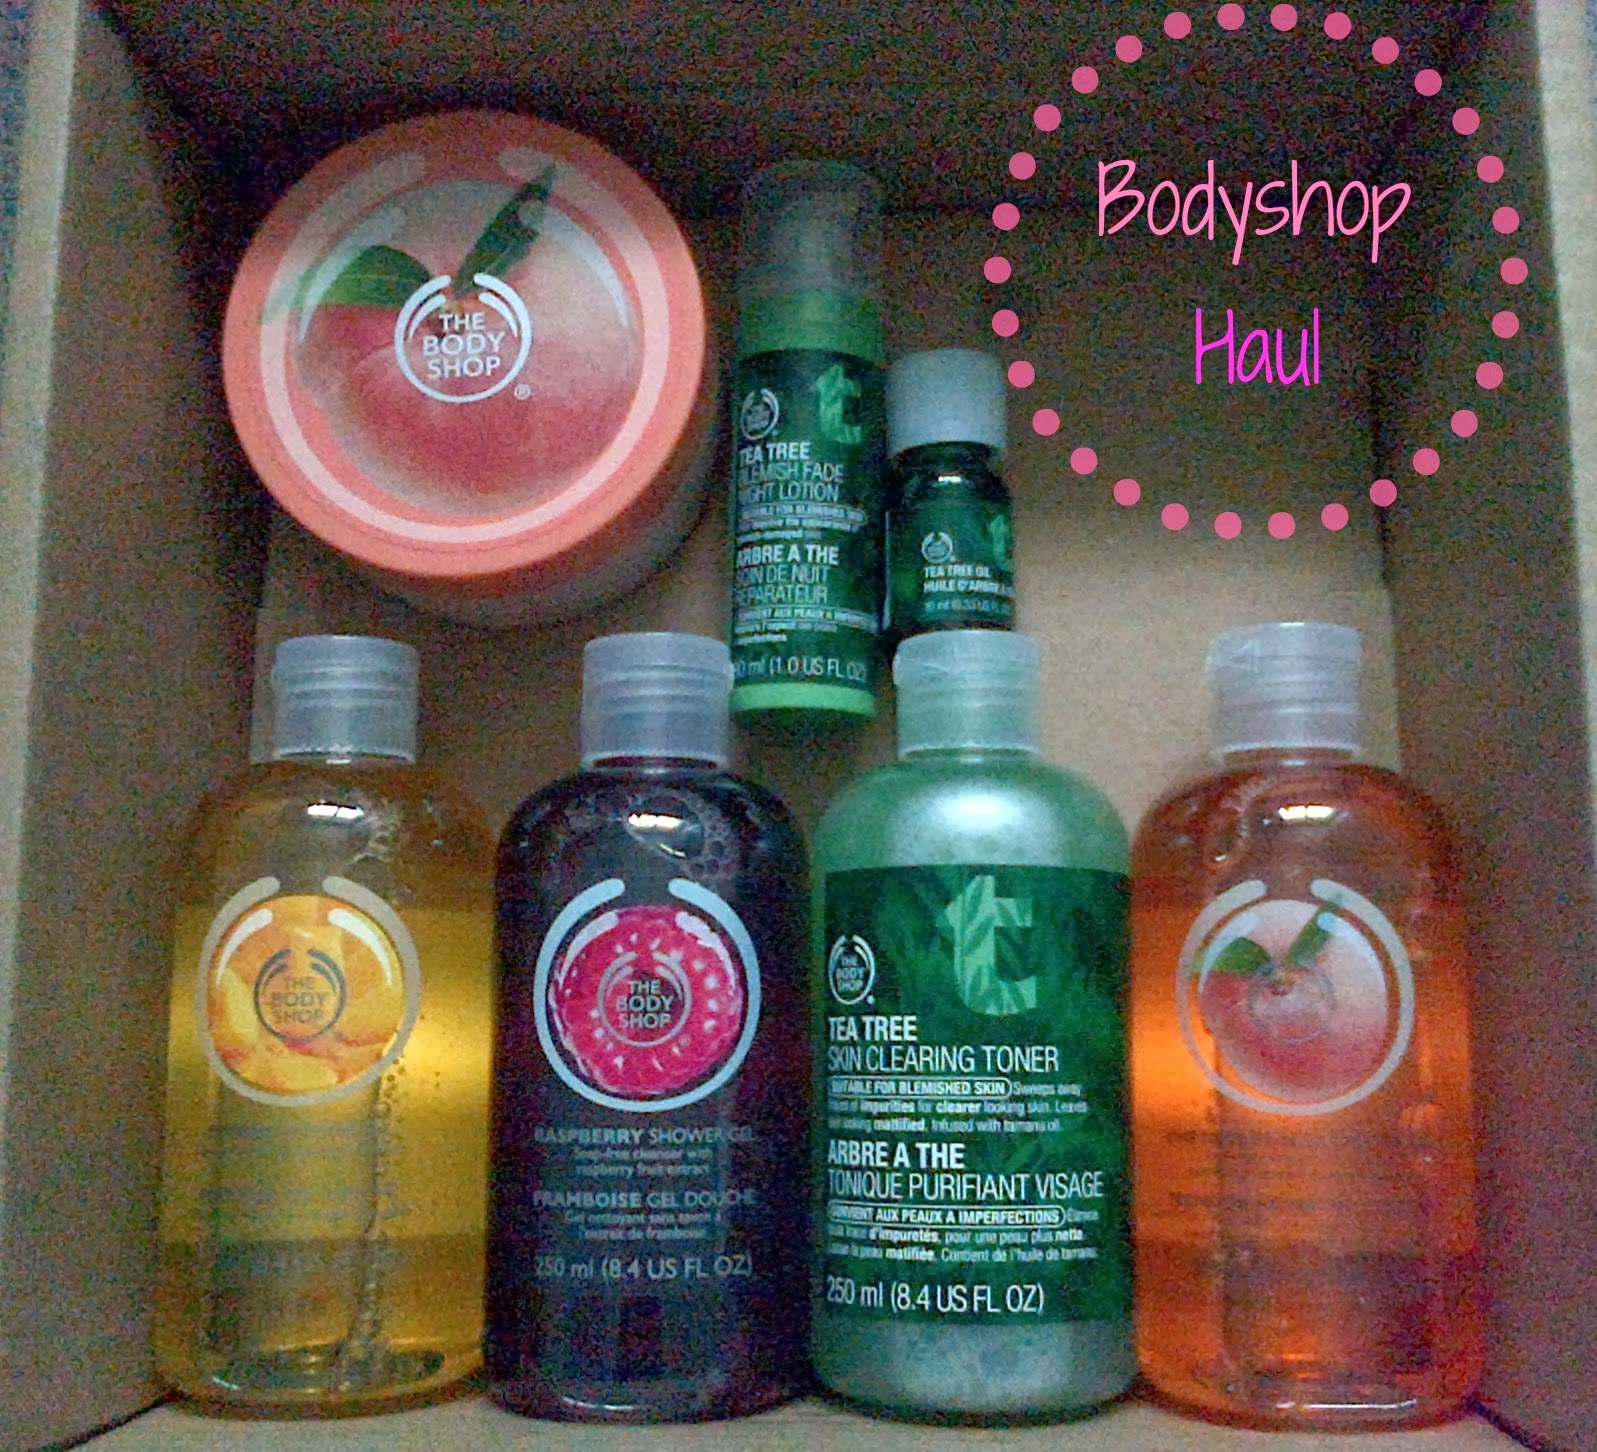 The Bodyshop Haul